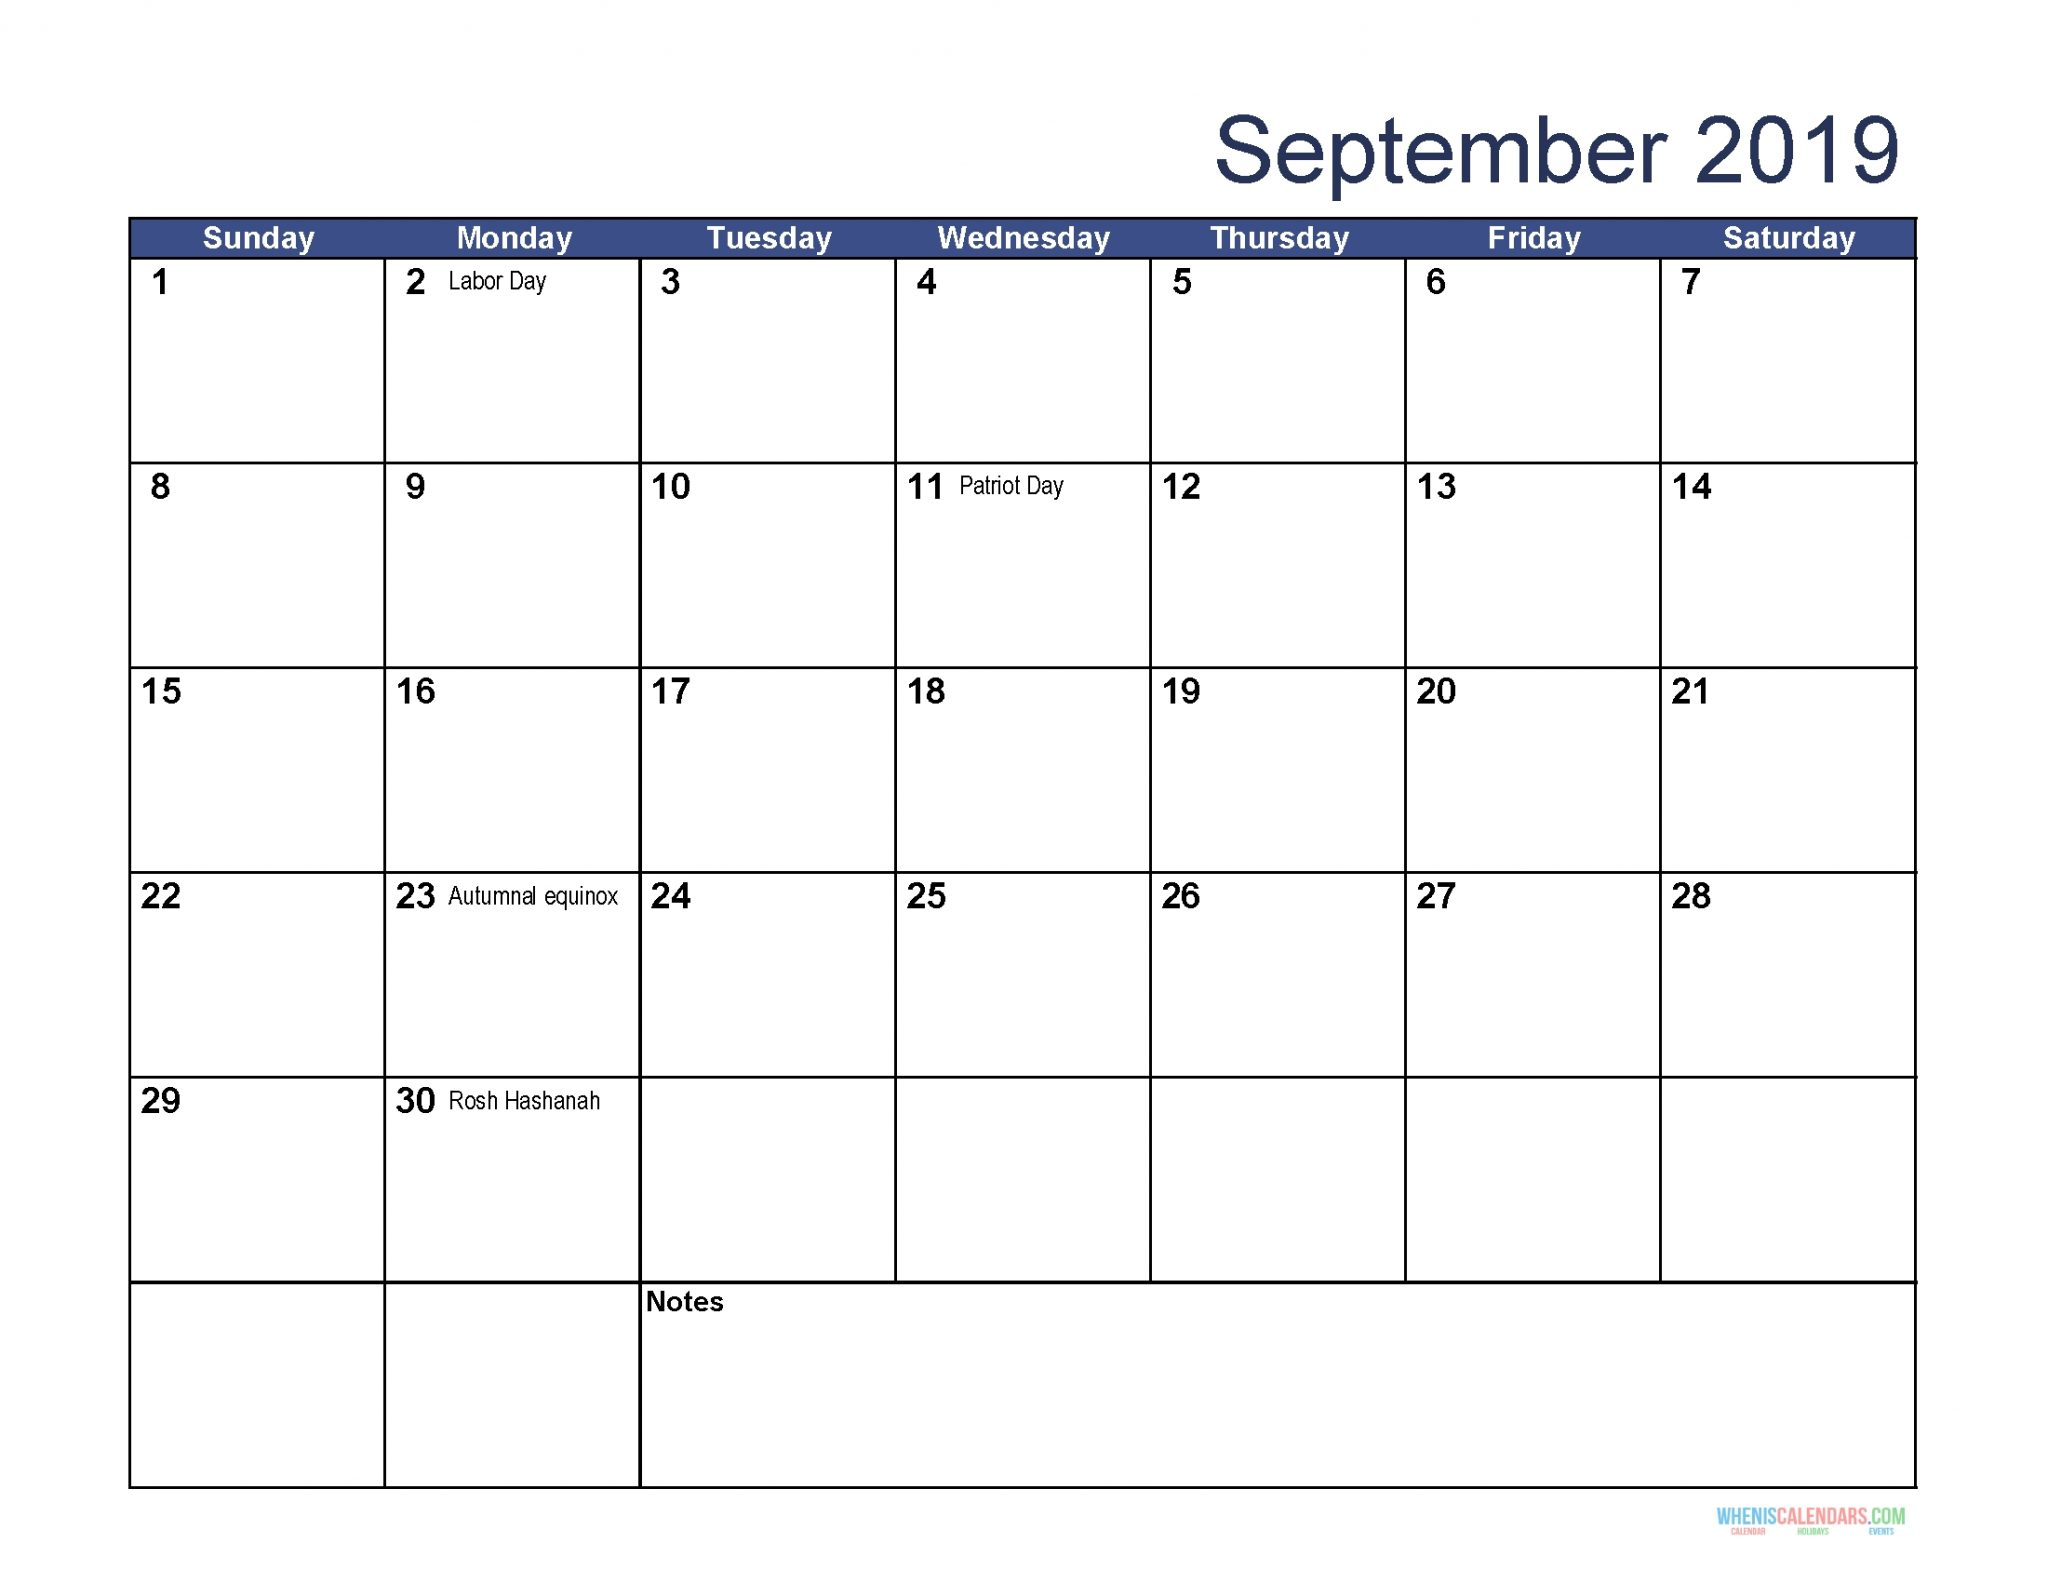 September 2019 Calendar With Holidays Template